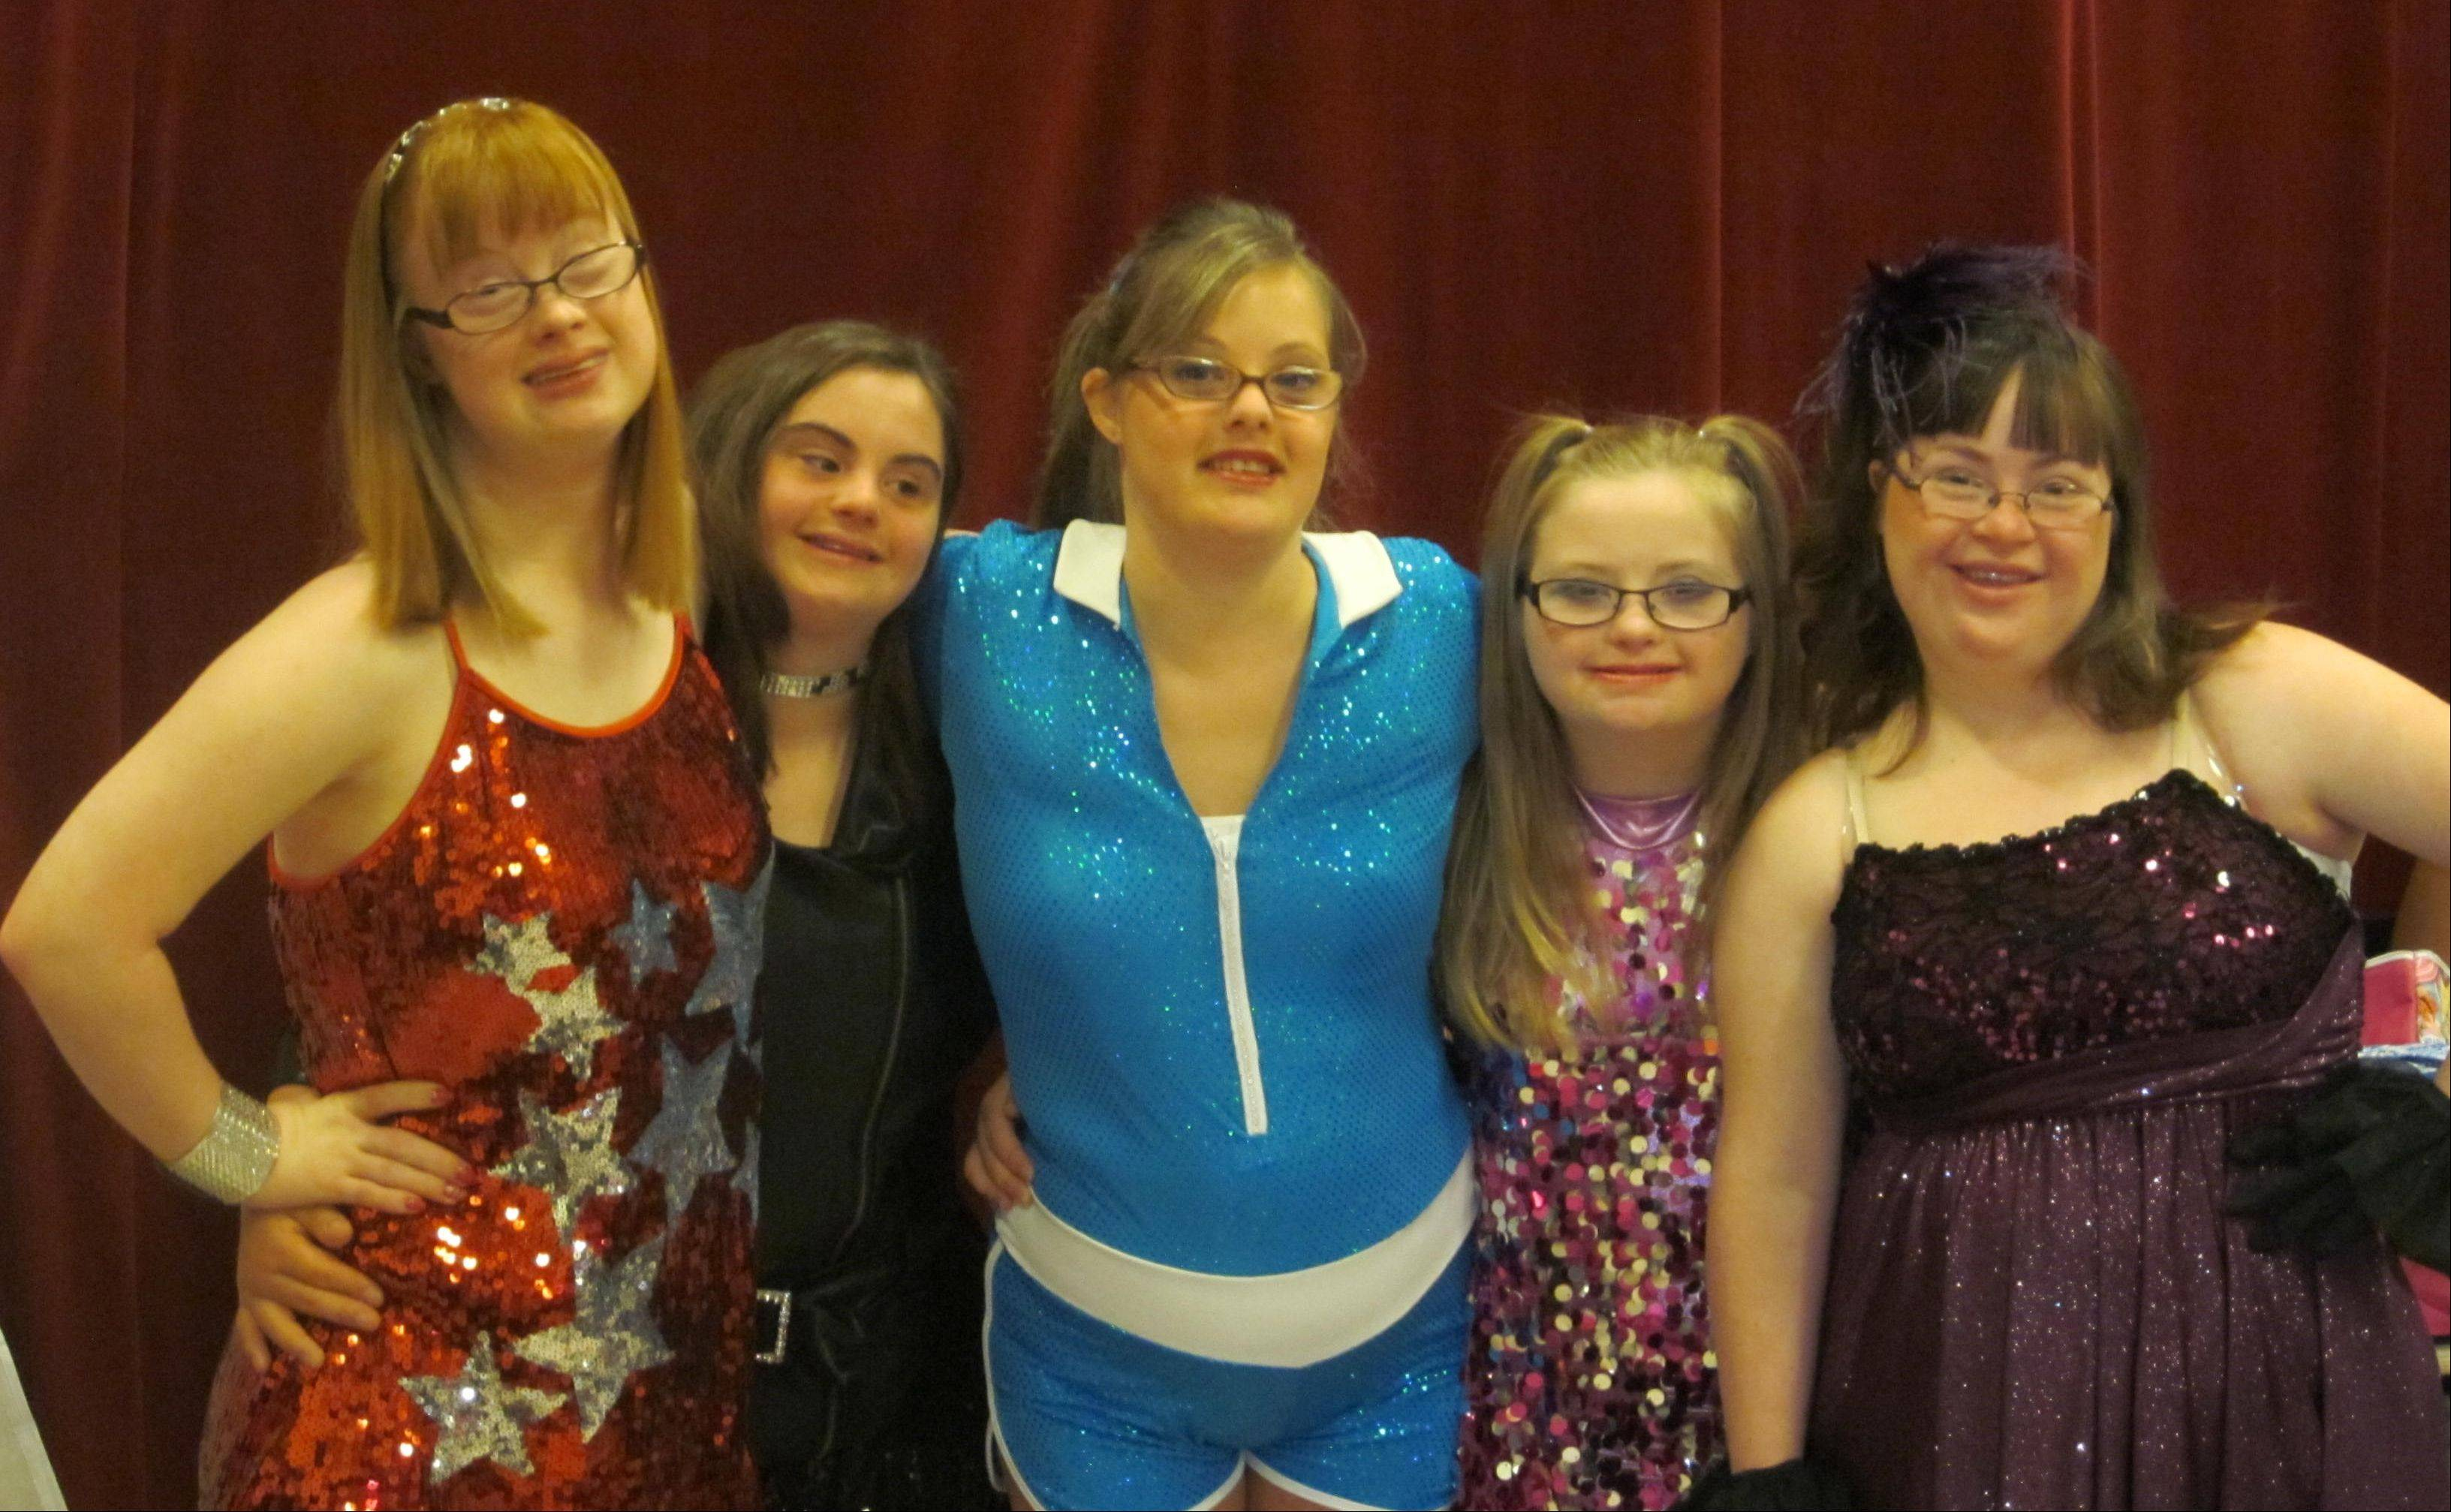 A dance troupe featuring five young women with Down syndrome � Kelly Neville, Rachel Giagnorio, Julia Smarto, Michelle Anderson and Allie Ravin-Hansen � came together at Center Stage Dance Studio in Bloomingdale and will perform in Special Talents America.